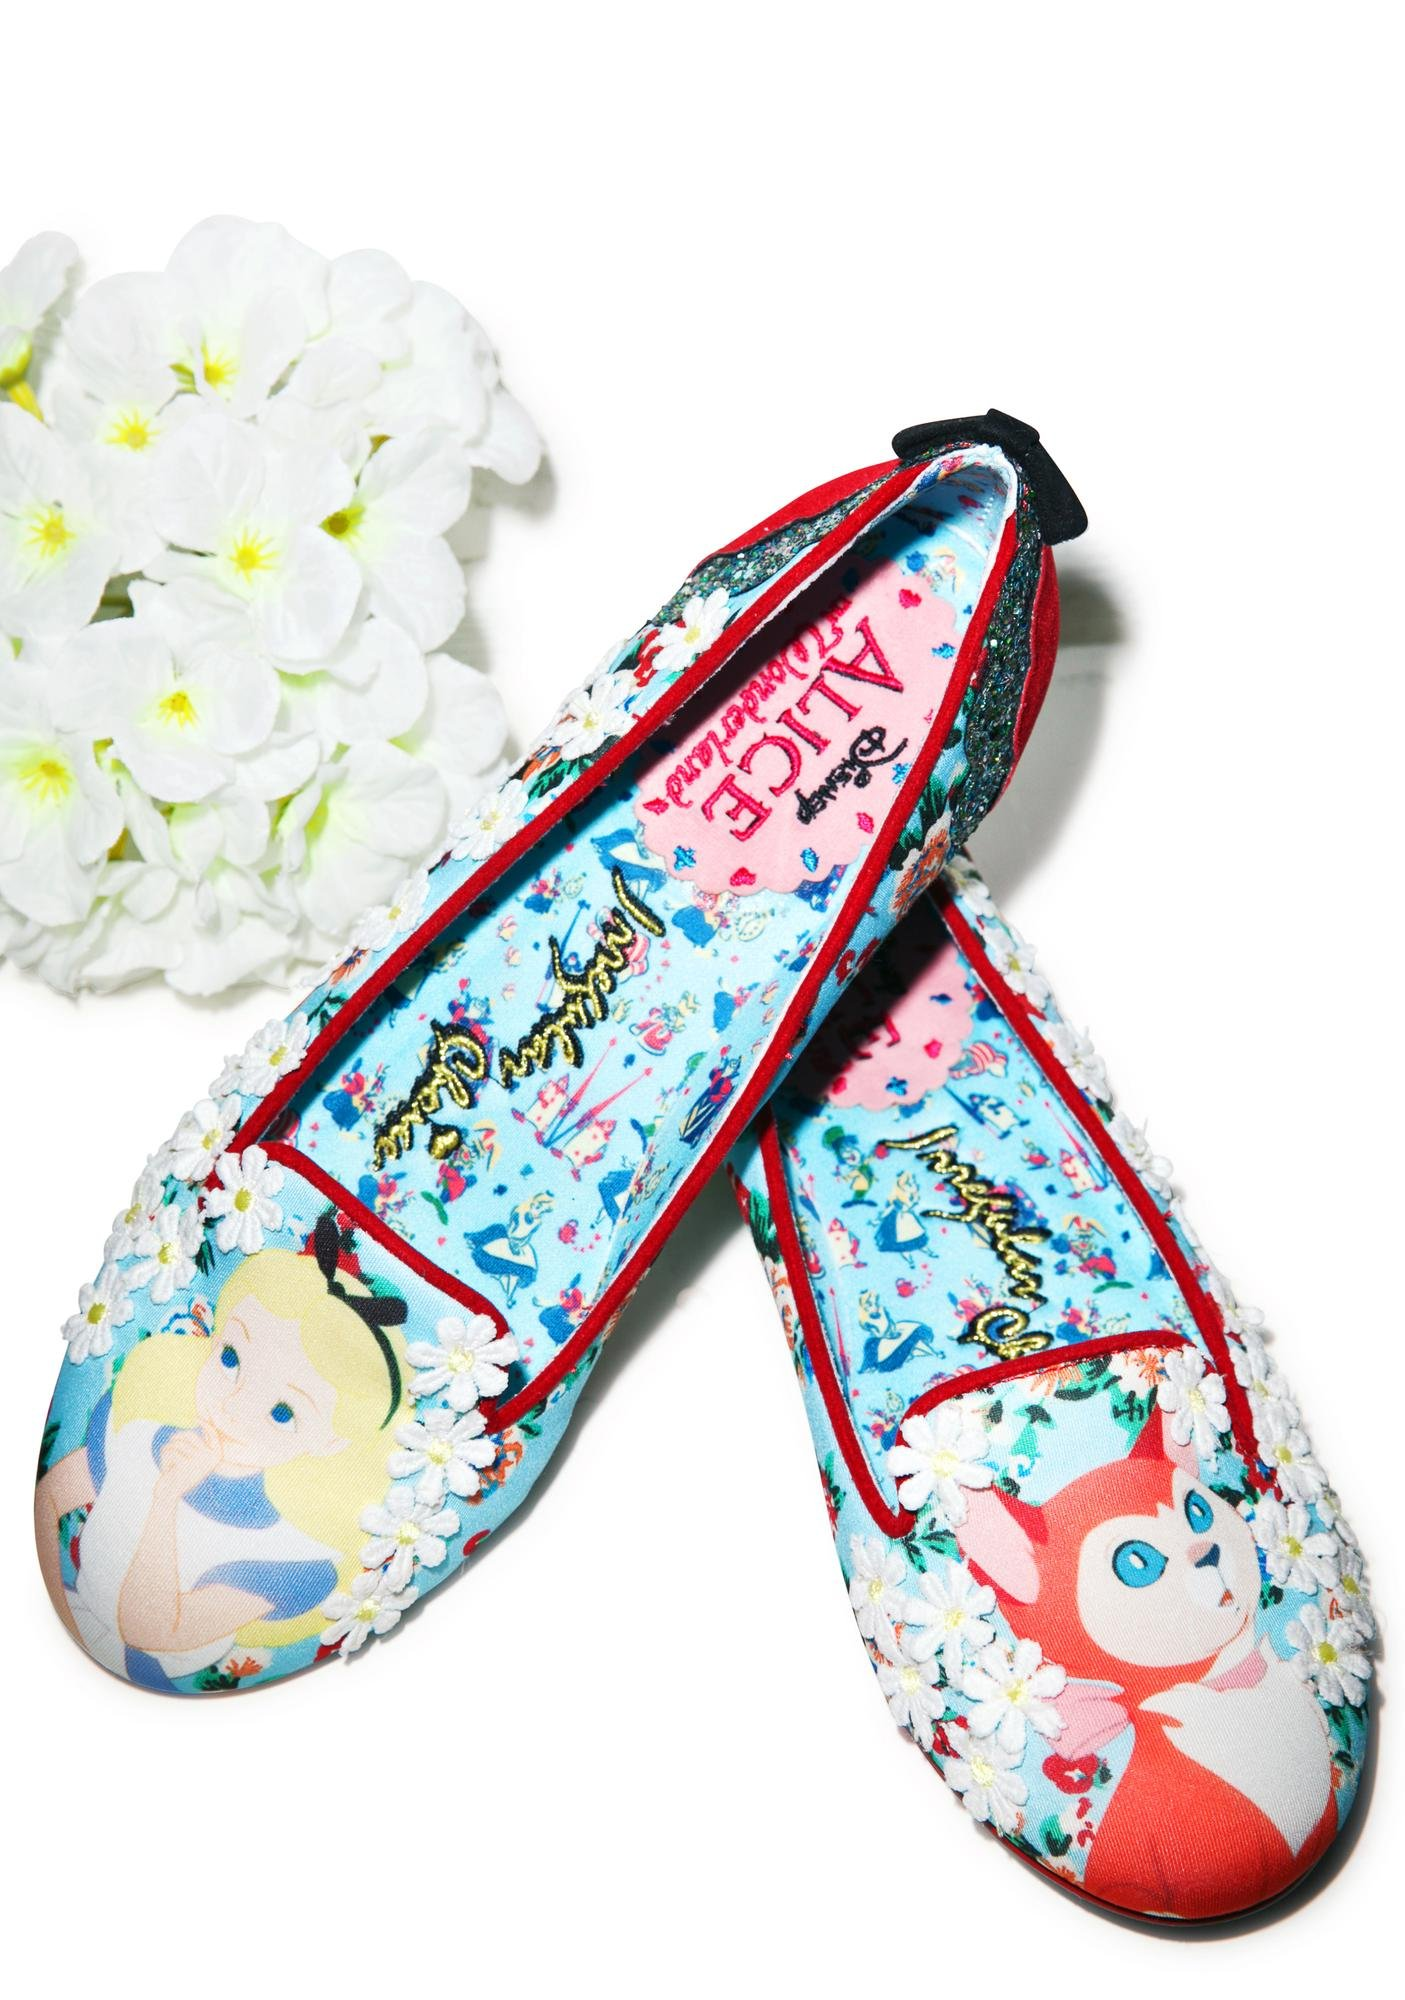 Irregular Choice Alice In Wonderland Which Way Size US 7 Limited Edition